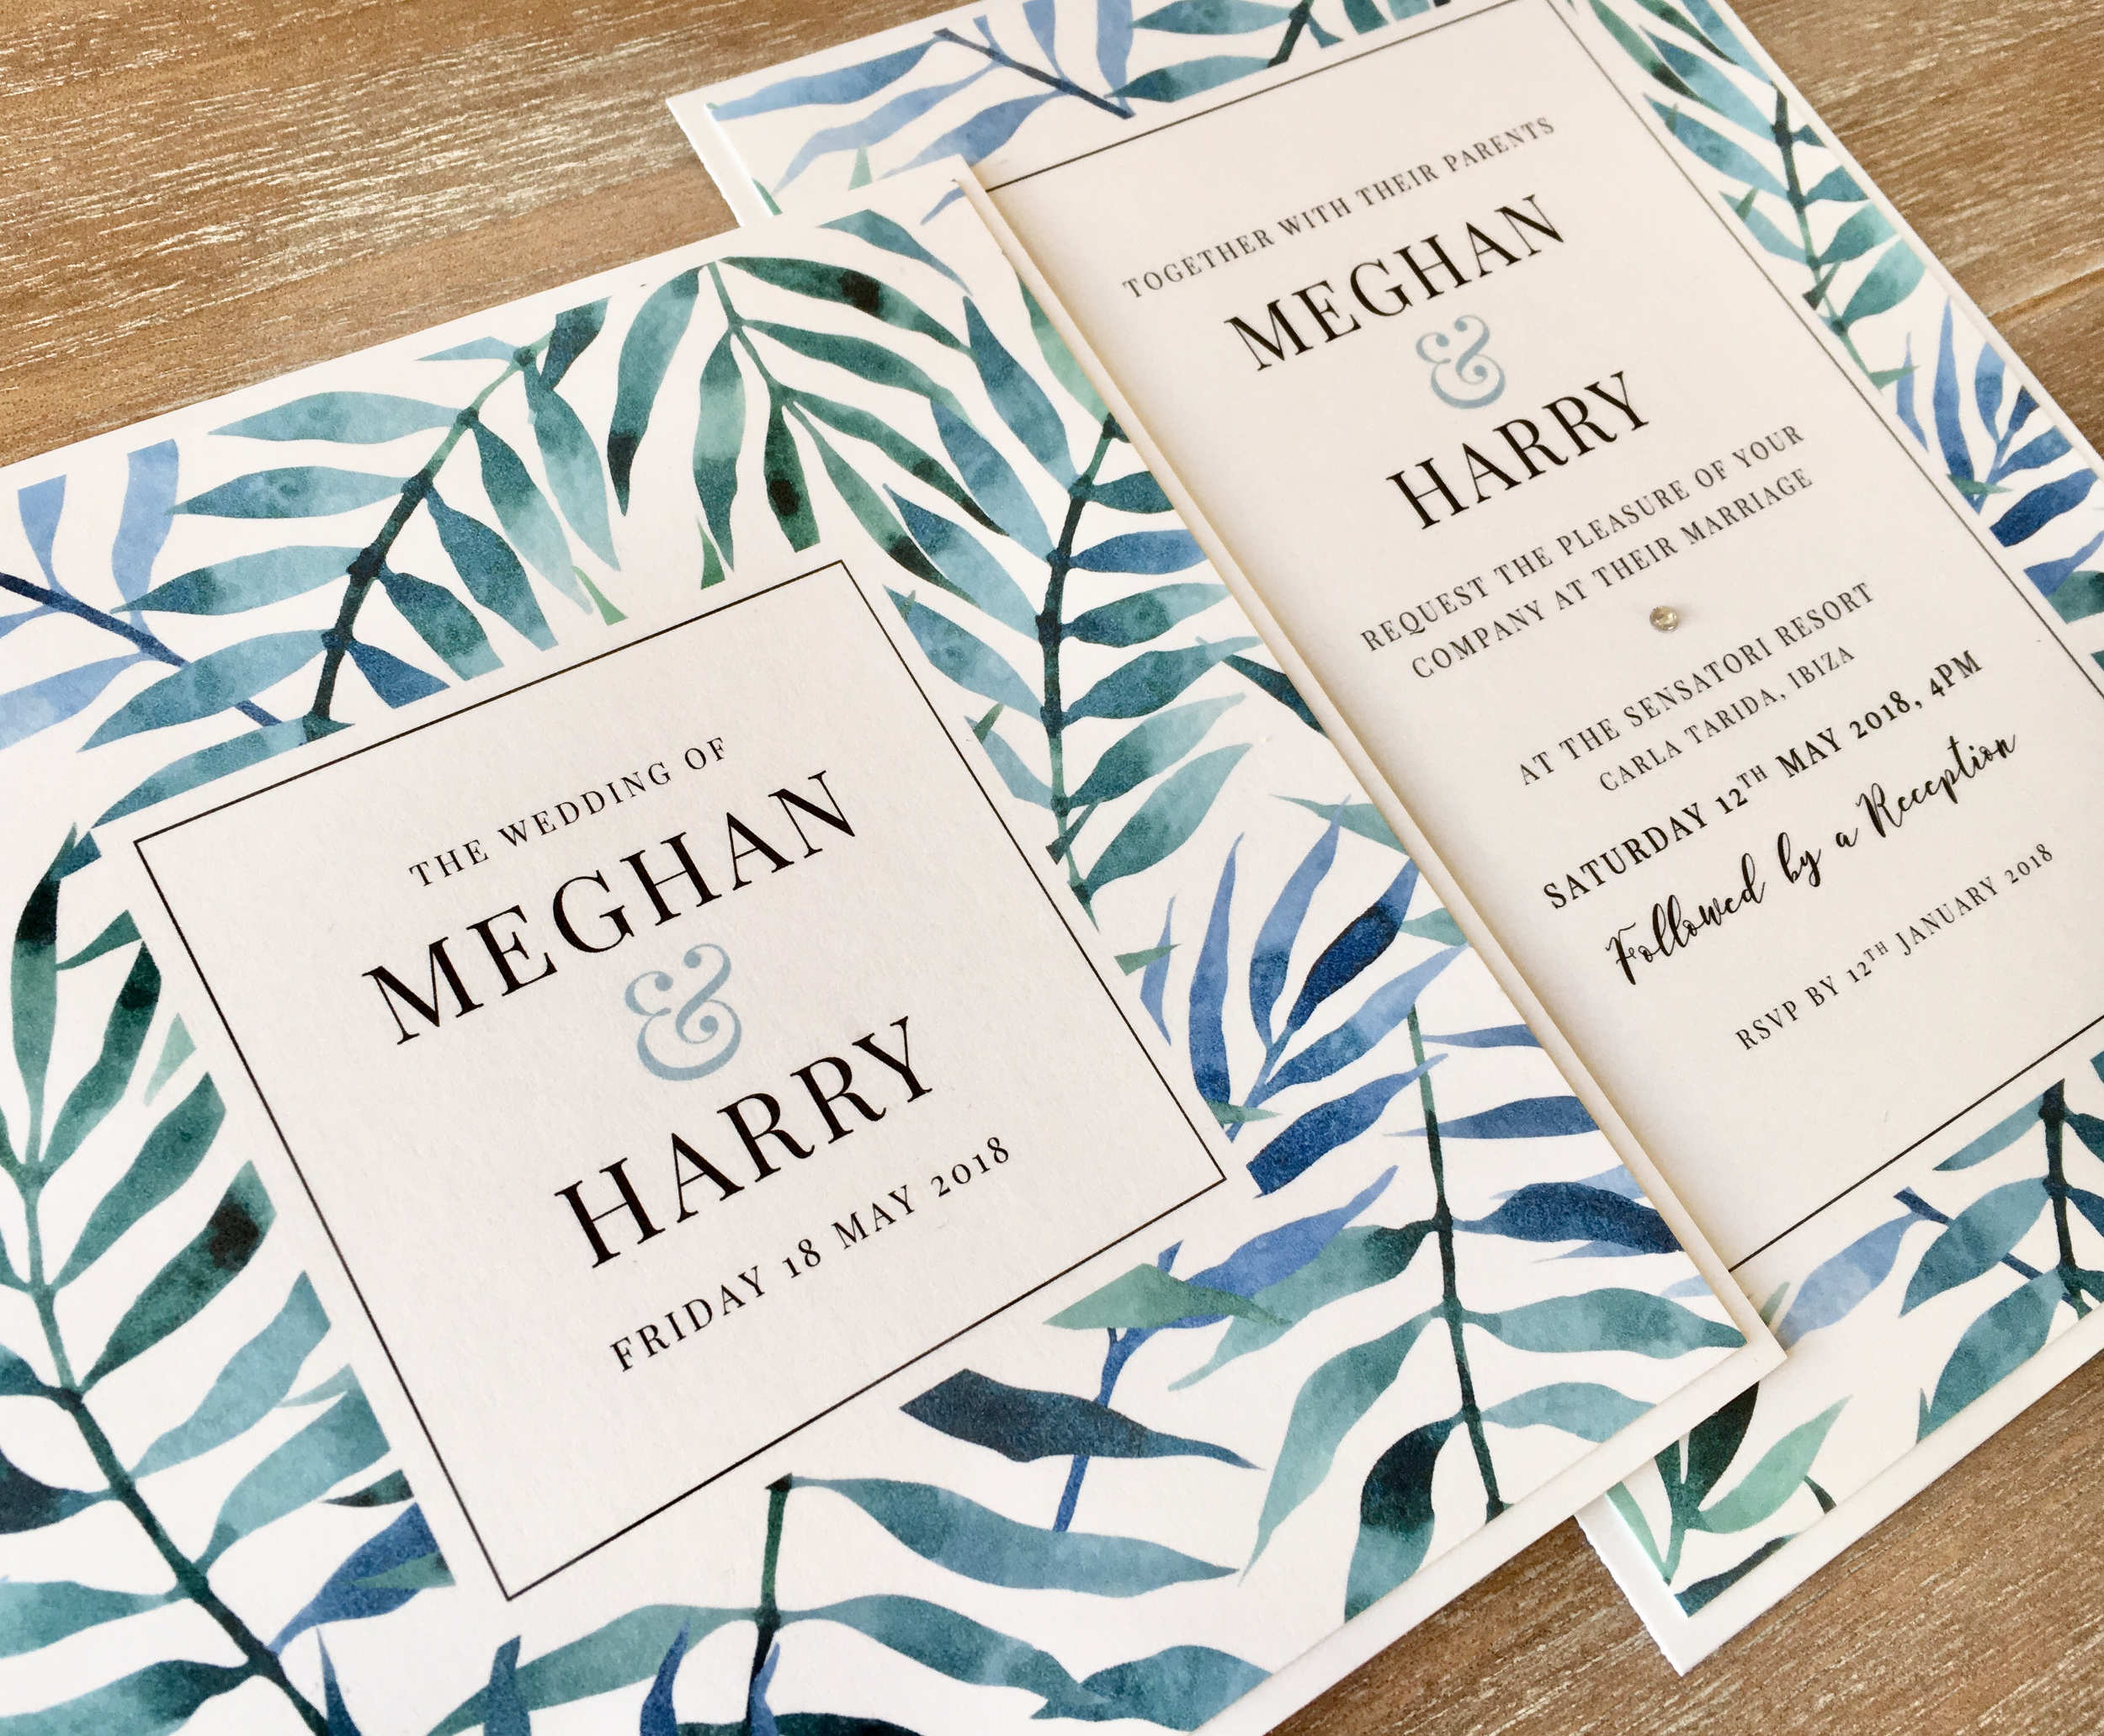 meghan_wedding_stationery.jpg